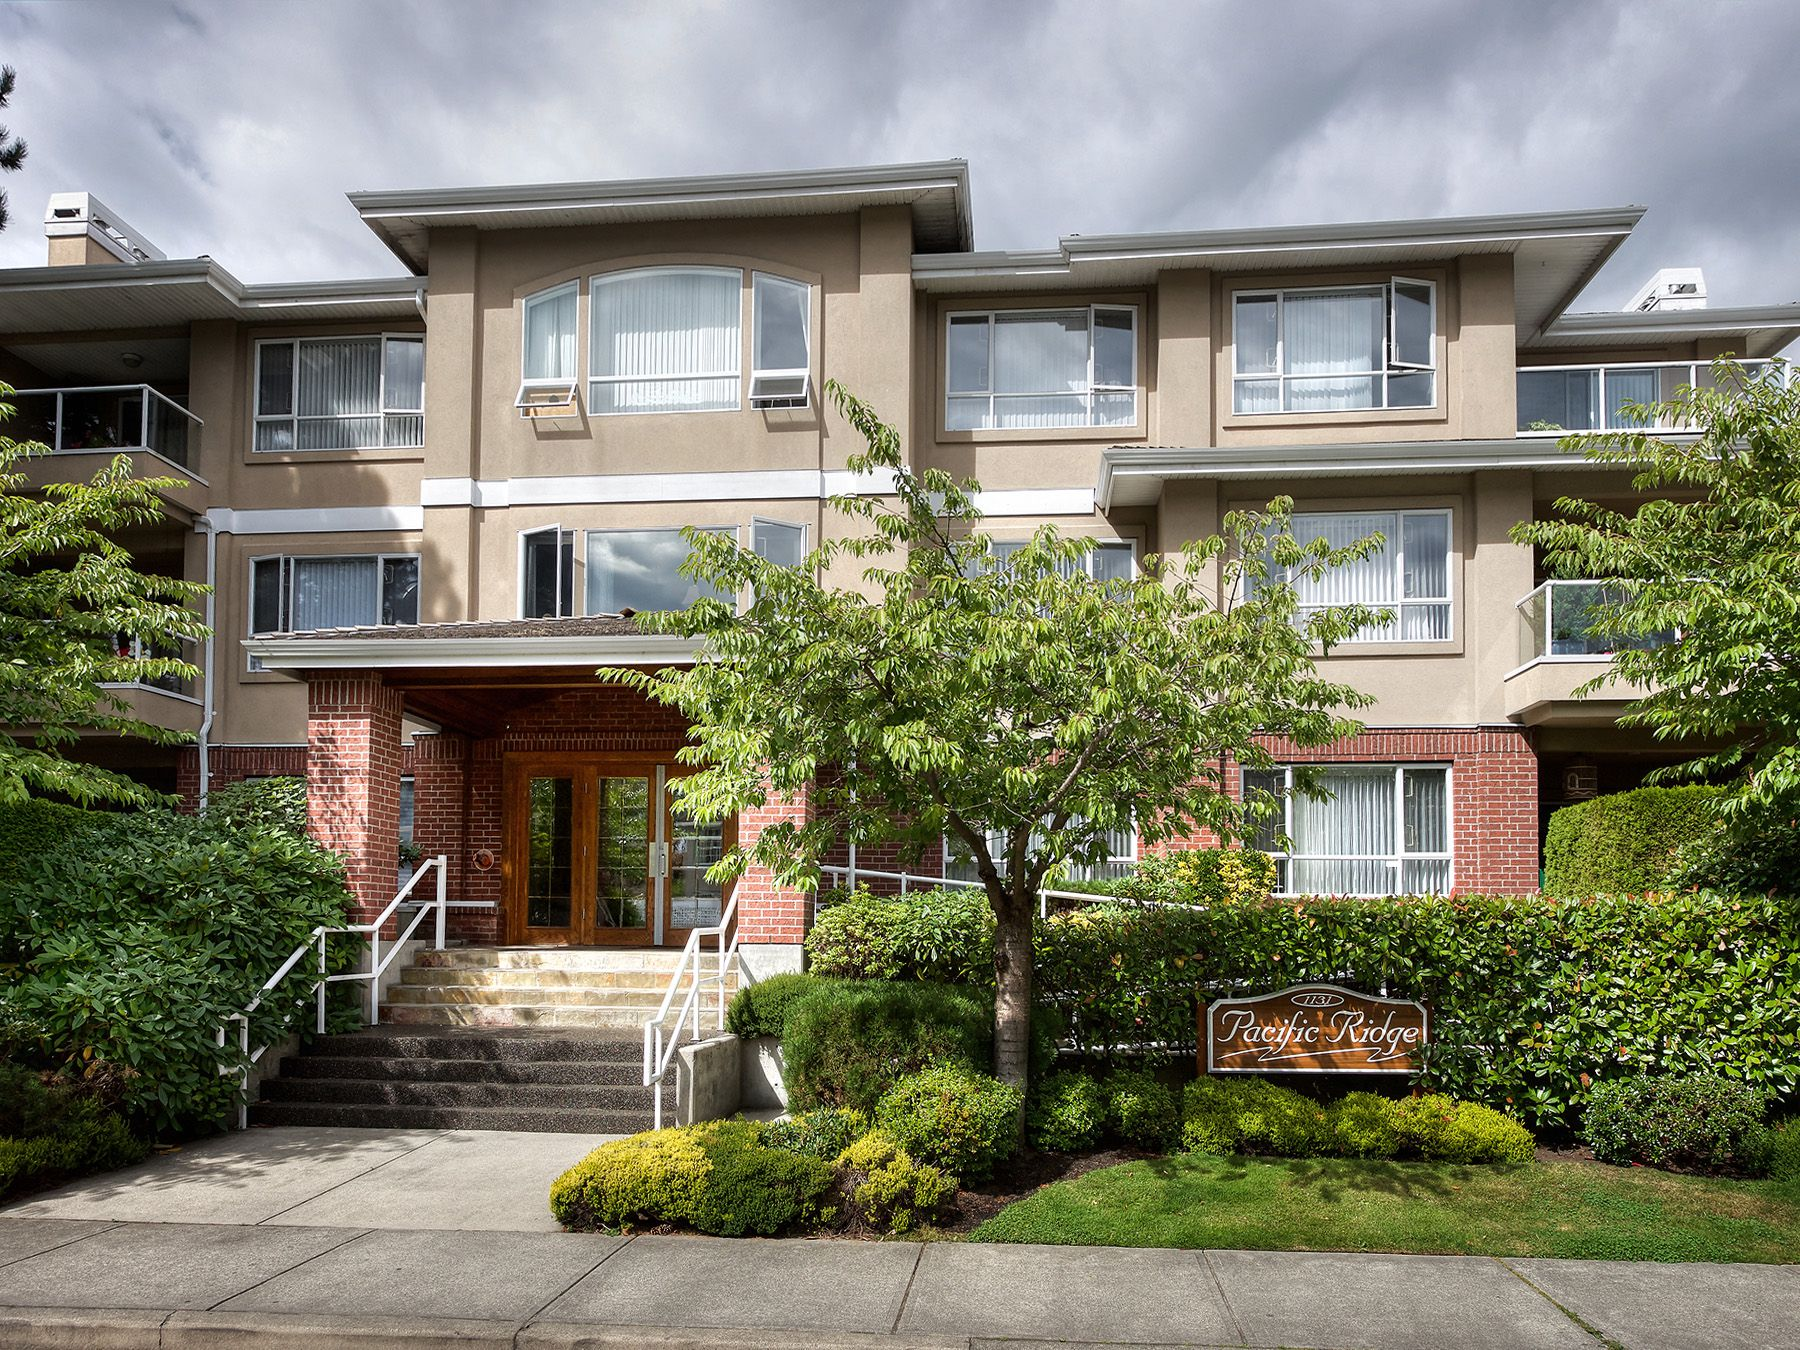 "Main Photo: 103 1131 55 Street in Delta: Tsawwassen Central Condo for sale in ""Pacific Ridge"" (Tsawwassen)  : MLS®# R2240491"